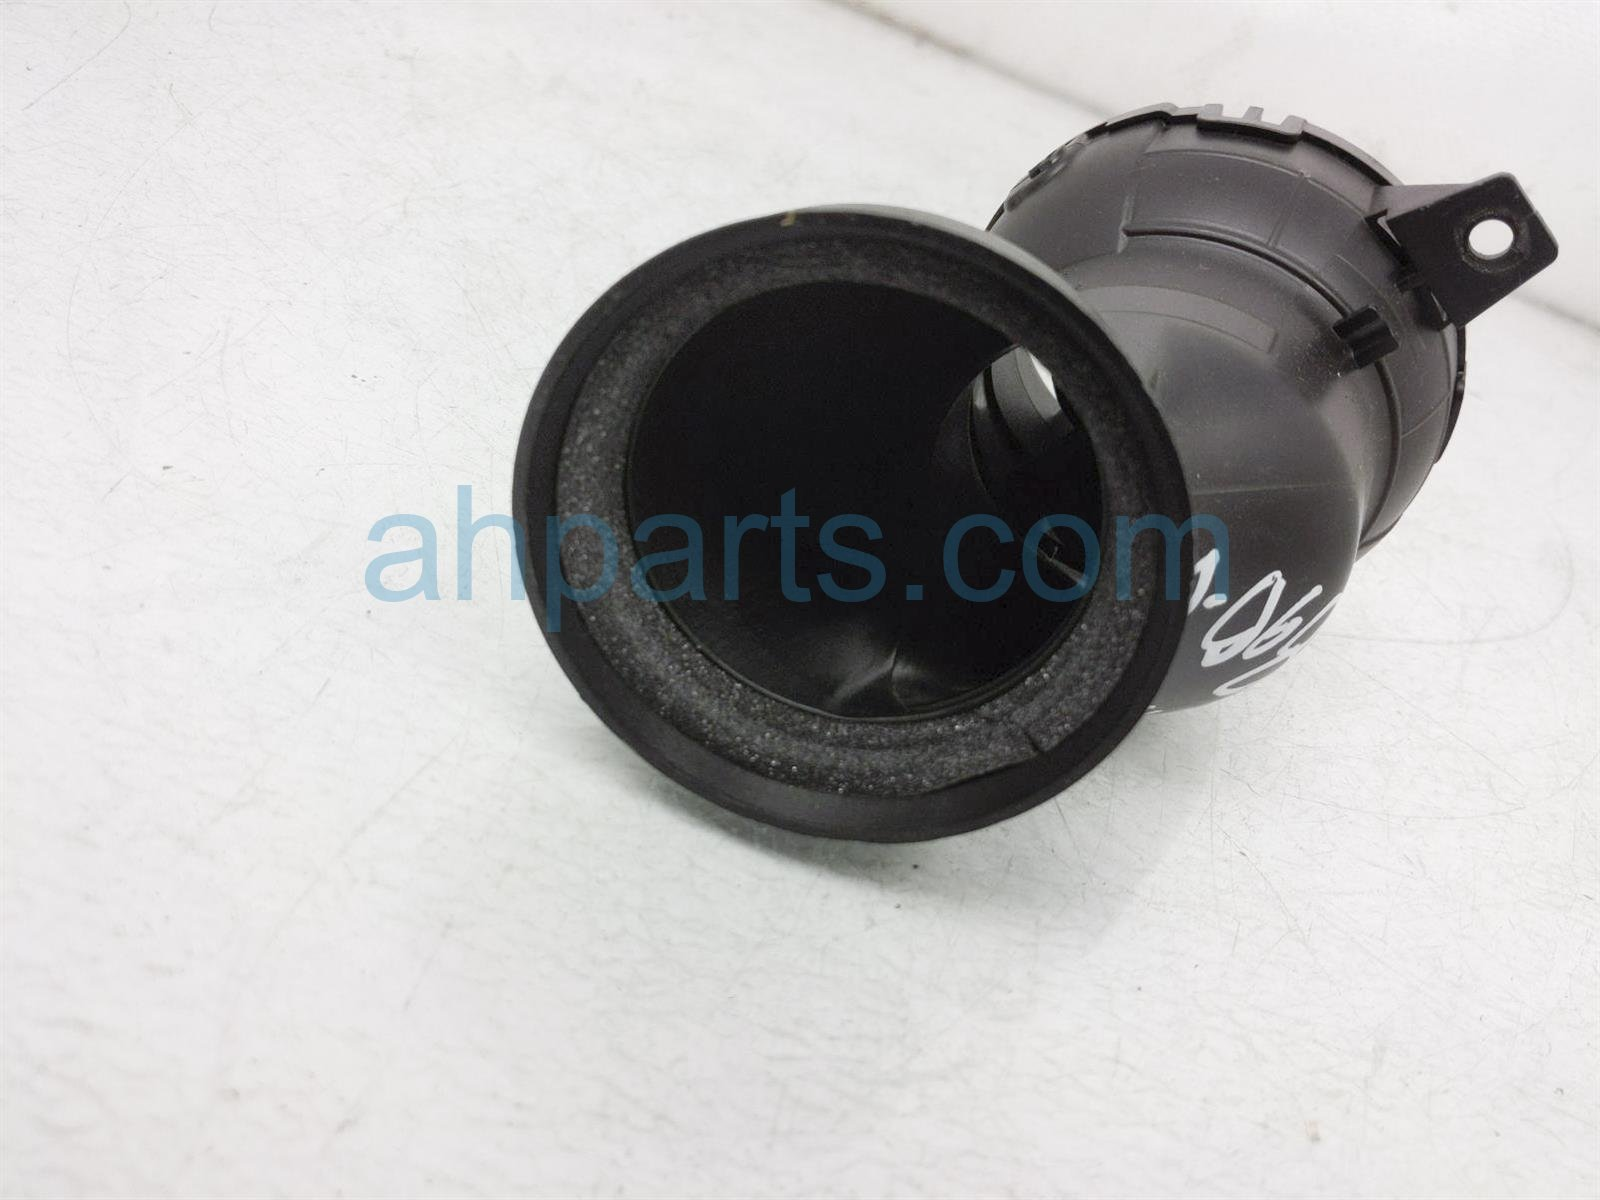 2014 BMW Clubman Minicooper Driver Center Dashboard Air Vent Outlet 51 45 2 754 451 Replacement